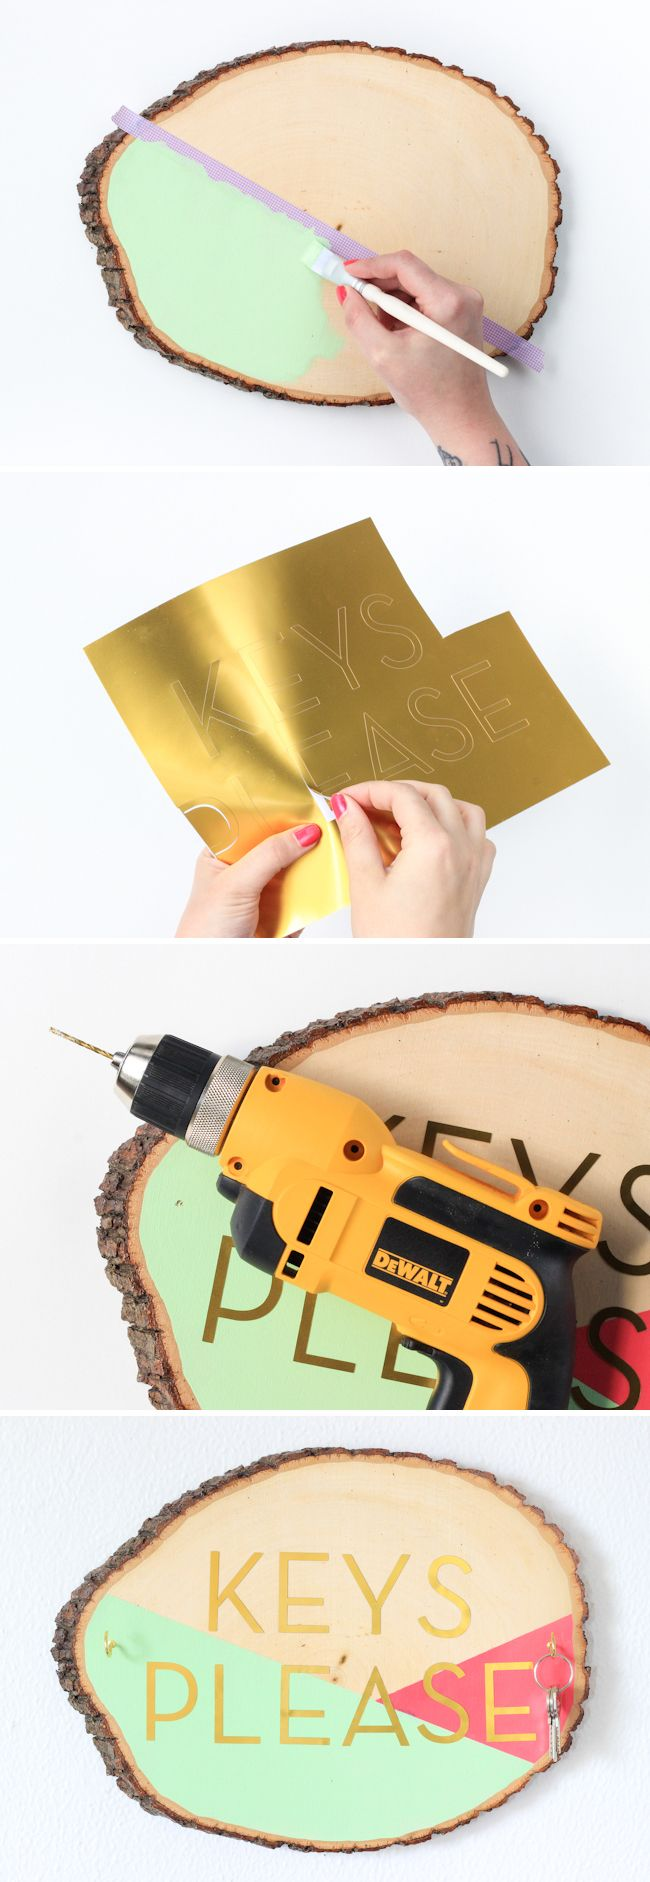 DIY Wooden Slab Key Holder, click through to see the full tutorial!